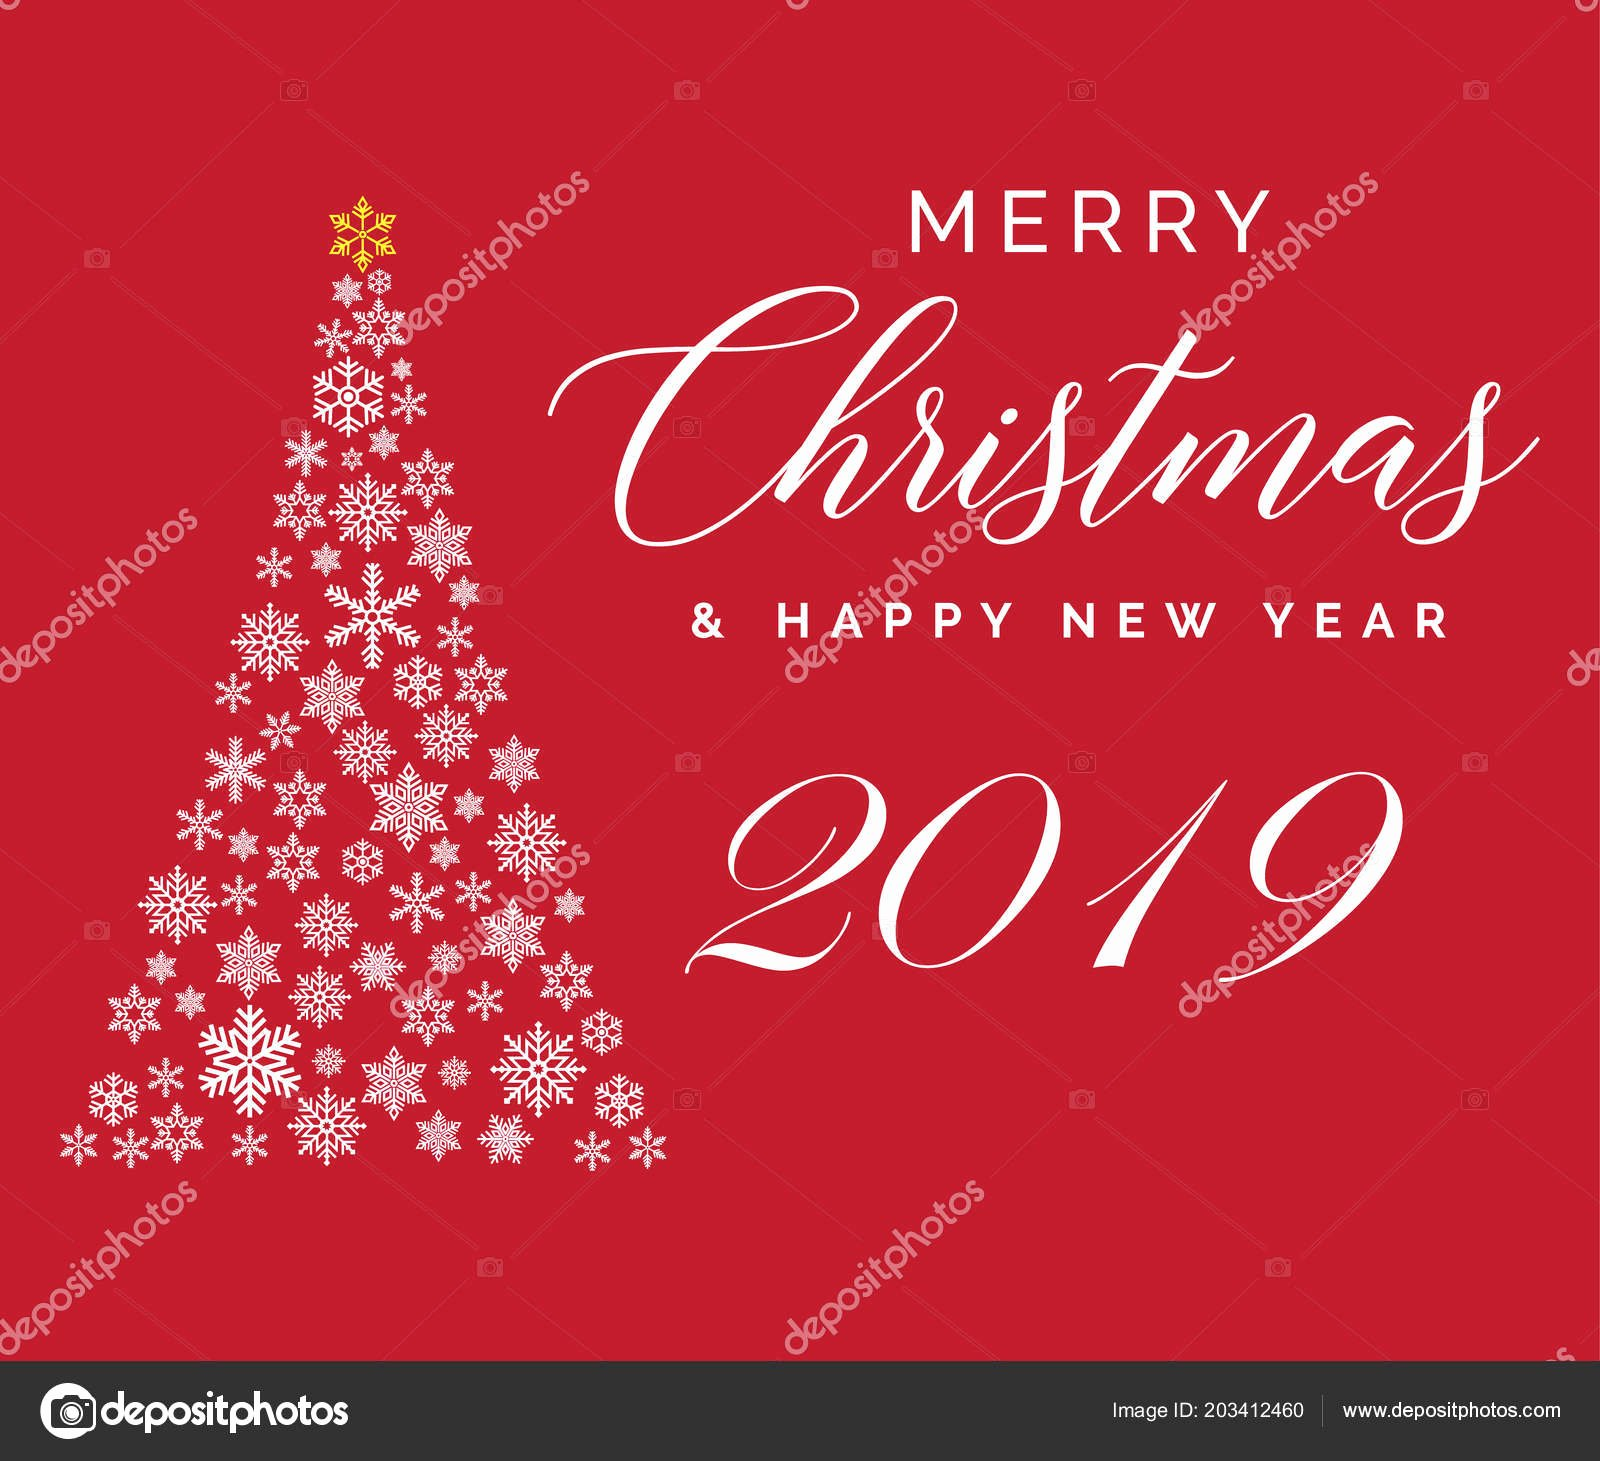 Happy New Years Email Template New Merry Christmas and Happy New Year Email with 2019